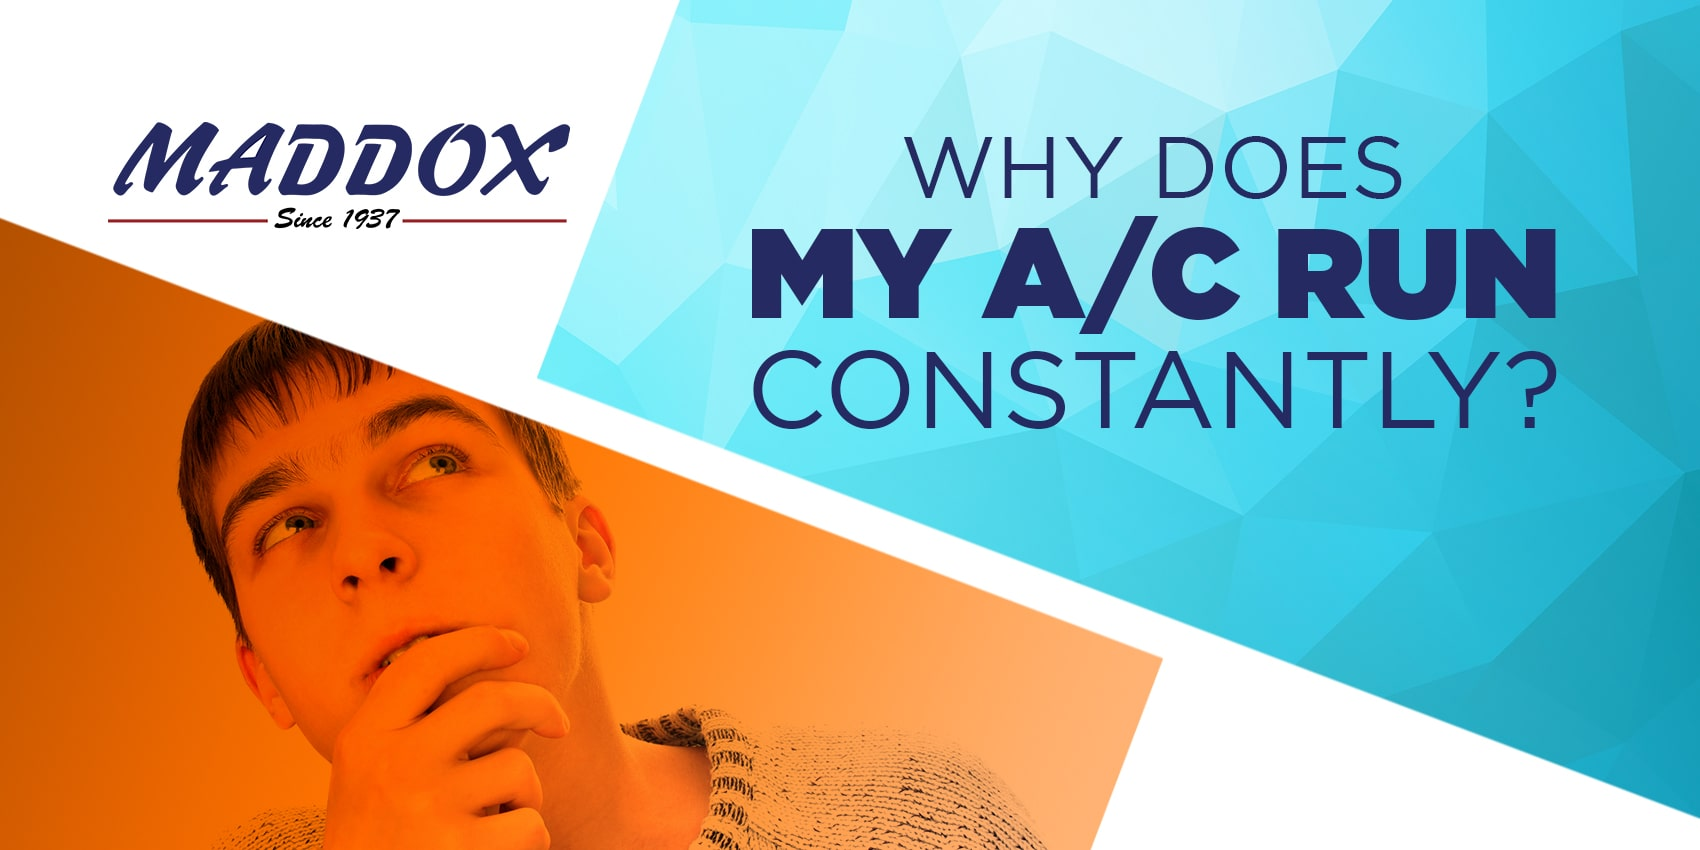 Why Does My A/C Run Constantly?